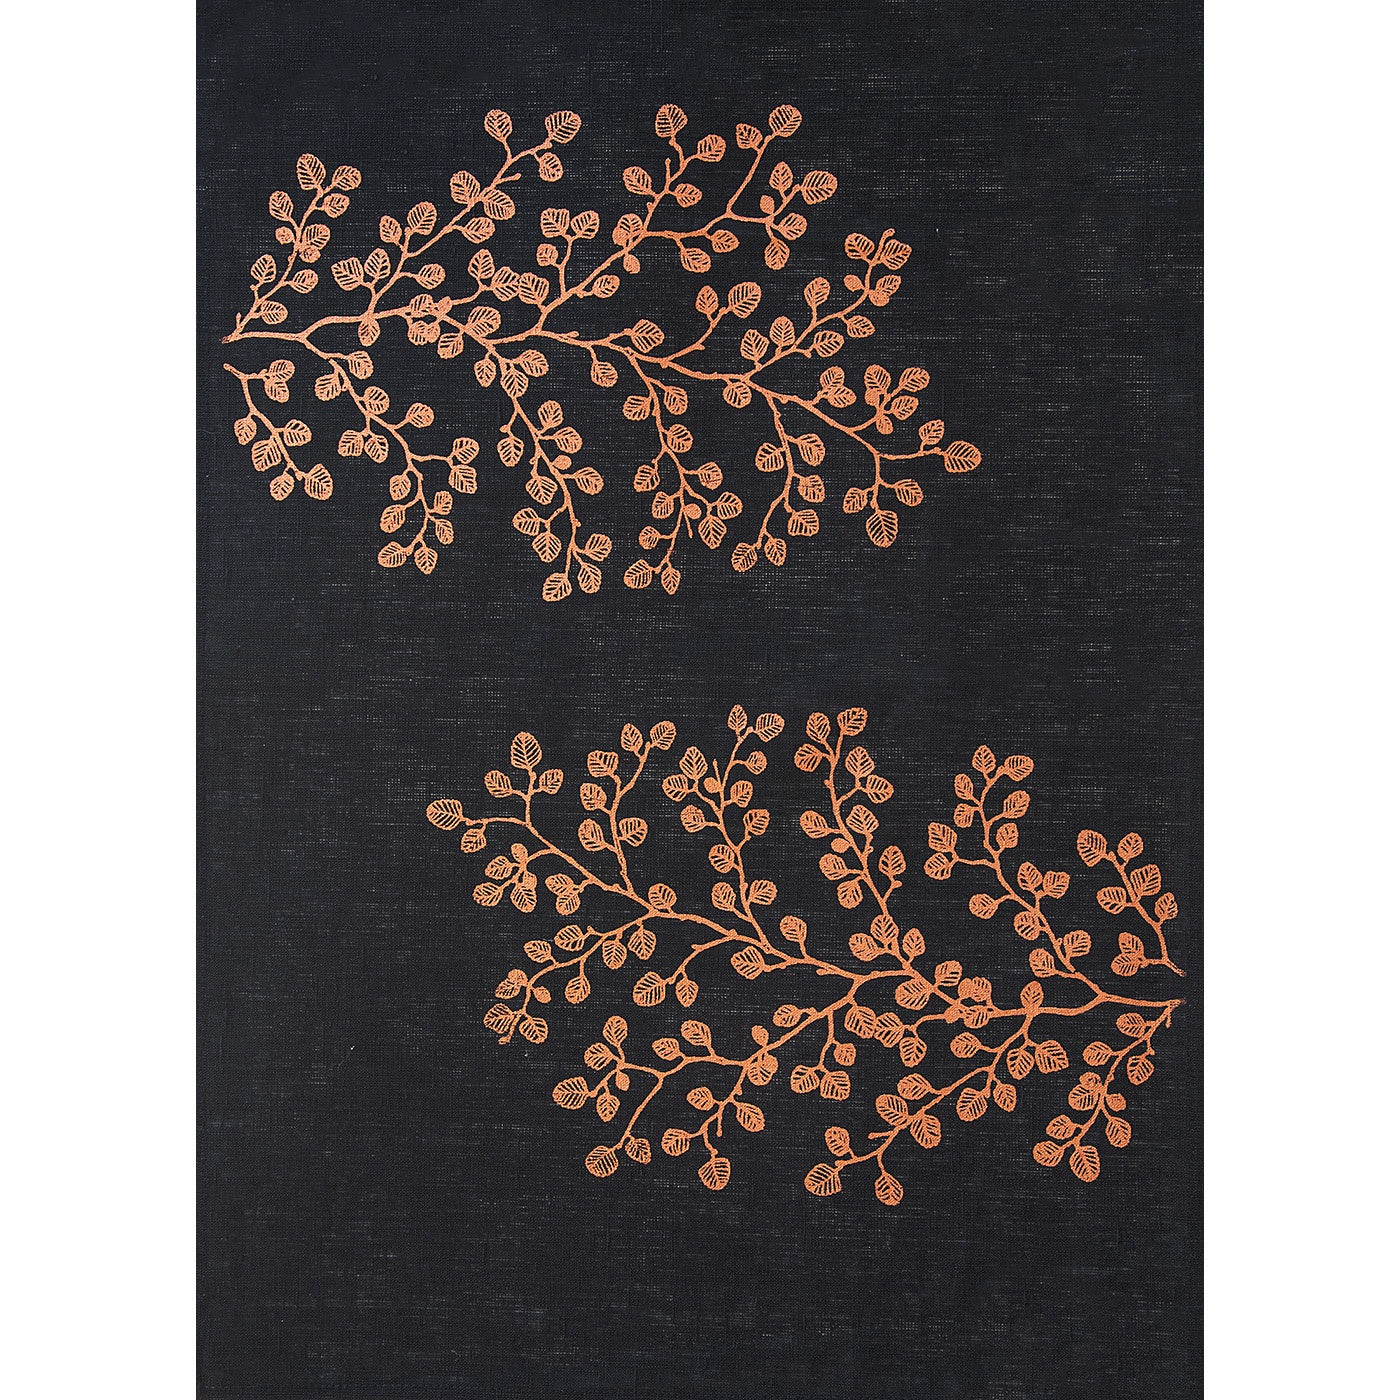 Stalley Textile Co. - Tea Towel - Fagus - Copper on Black